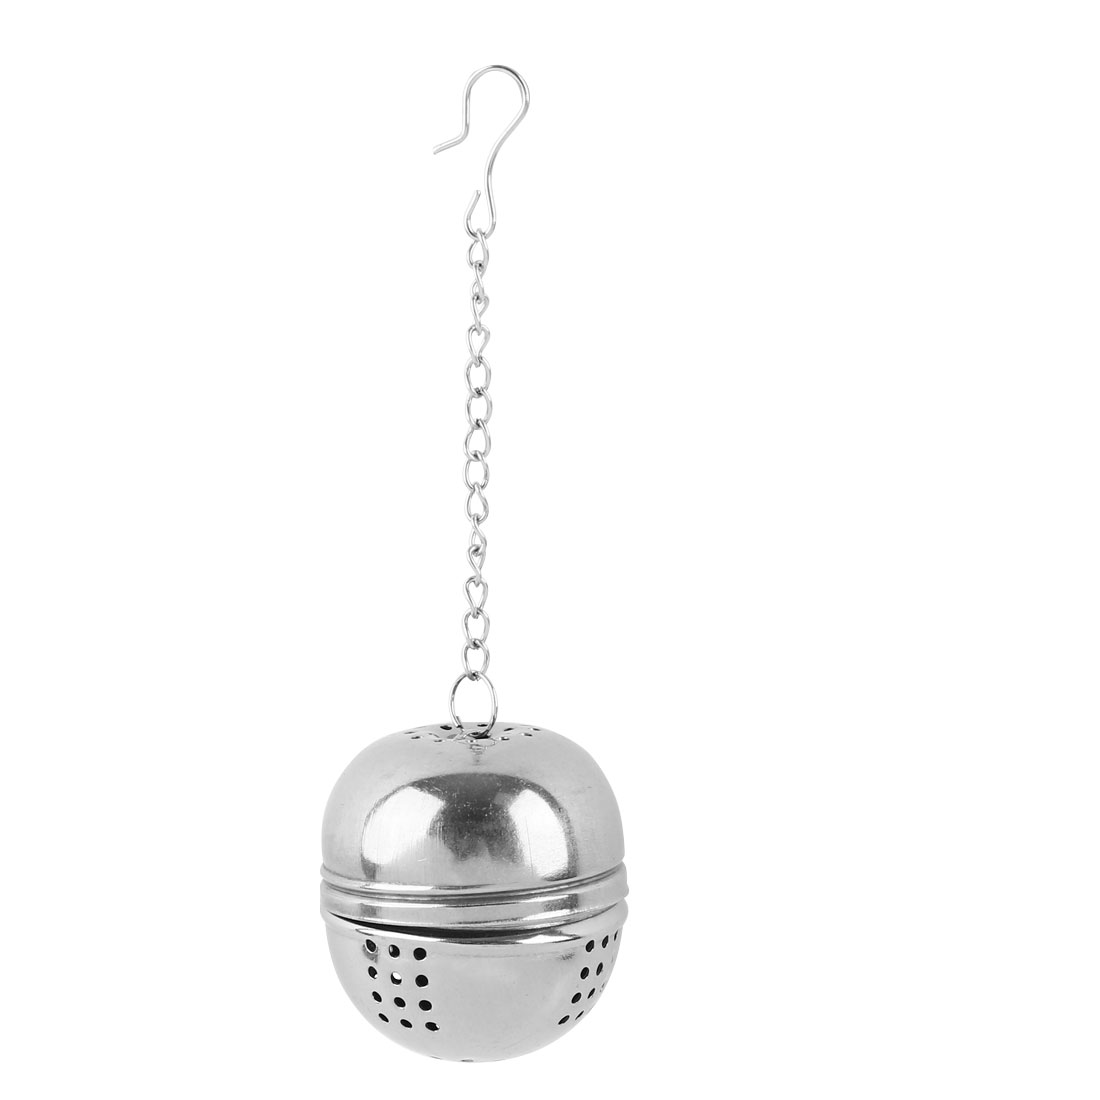 Household Stainless Steel Loose Leaf Tea Spice Perfume Infuser Ball Strainer 4cm Dia